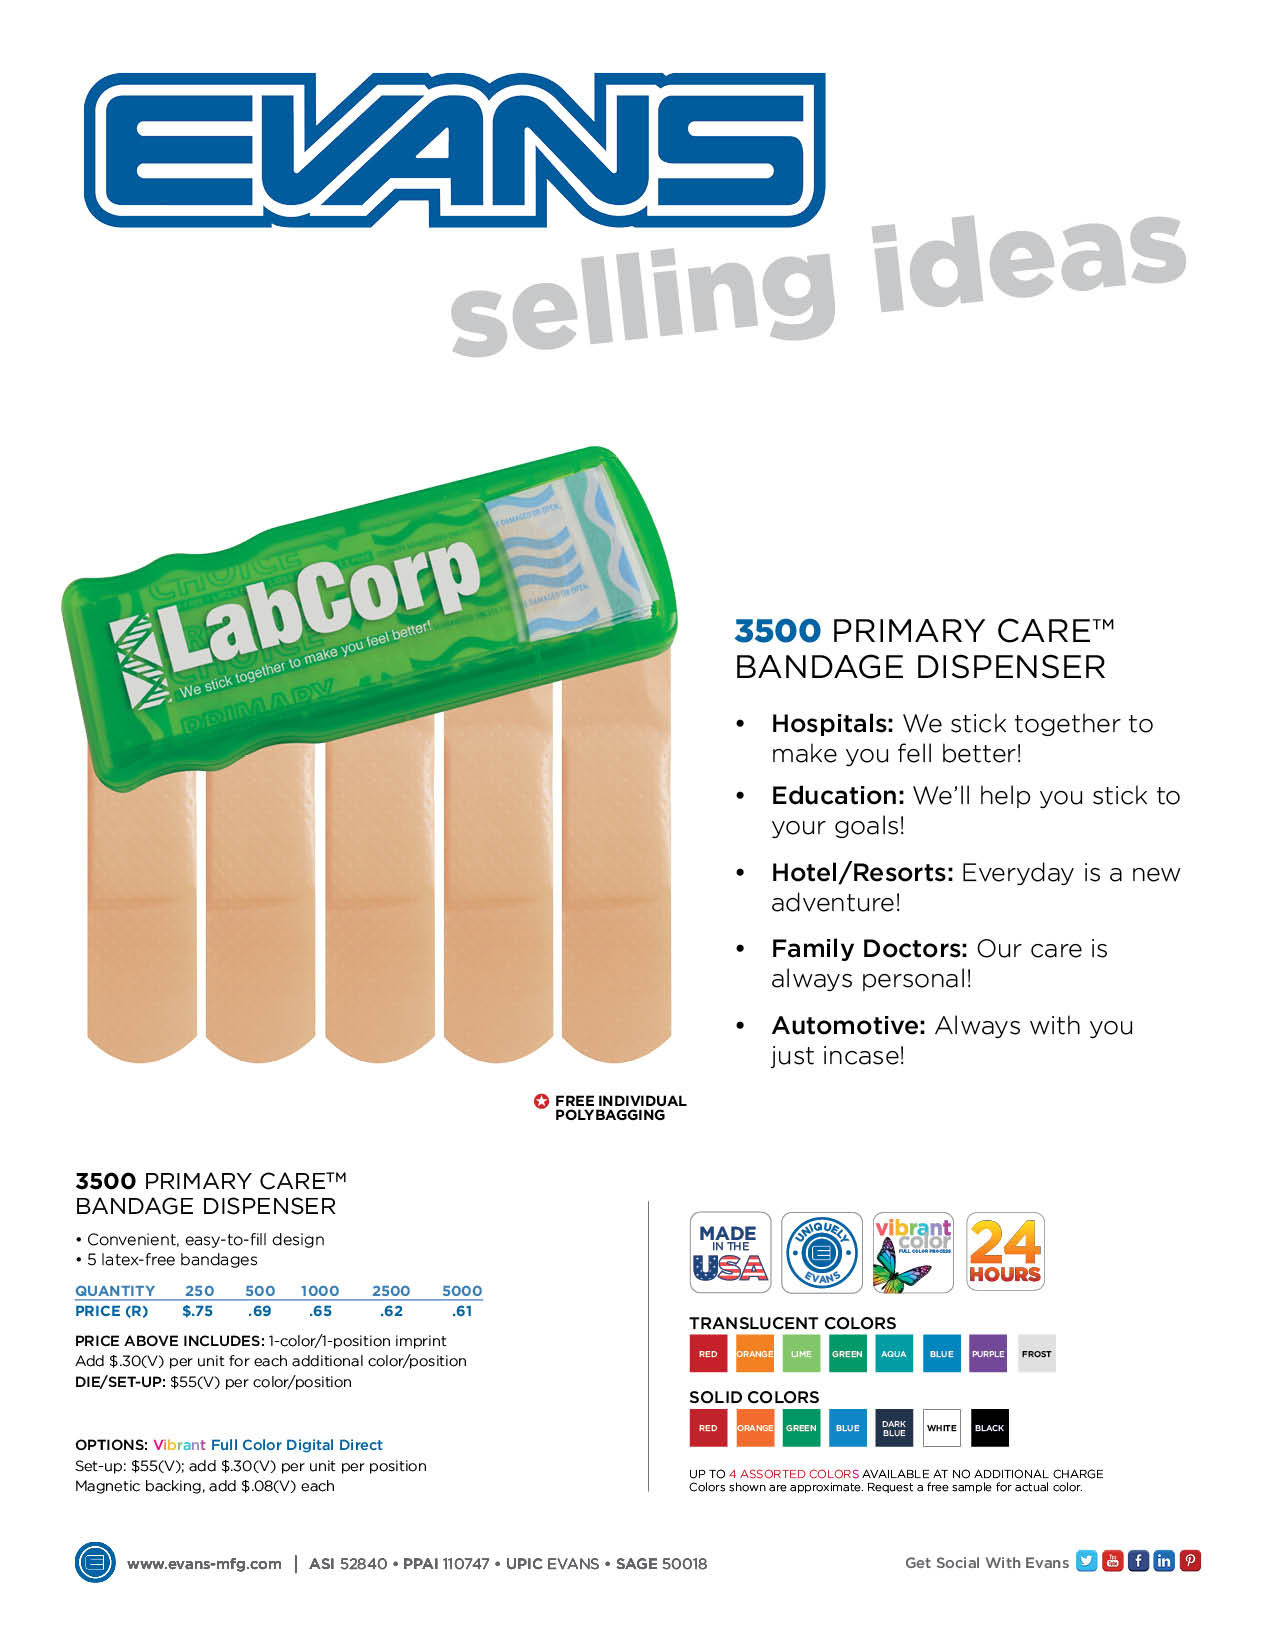 3500 - Primary Care™ Bandage Dispenser